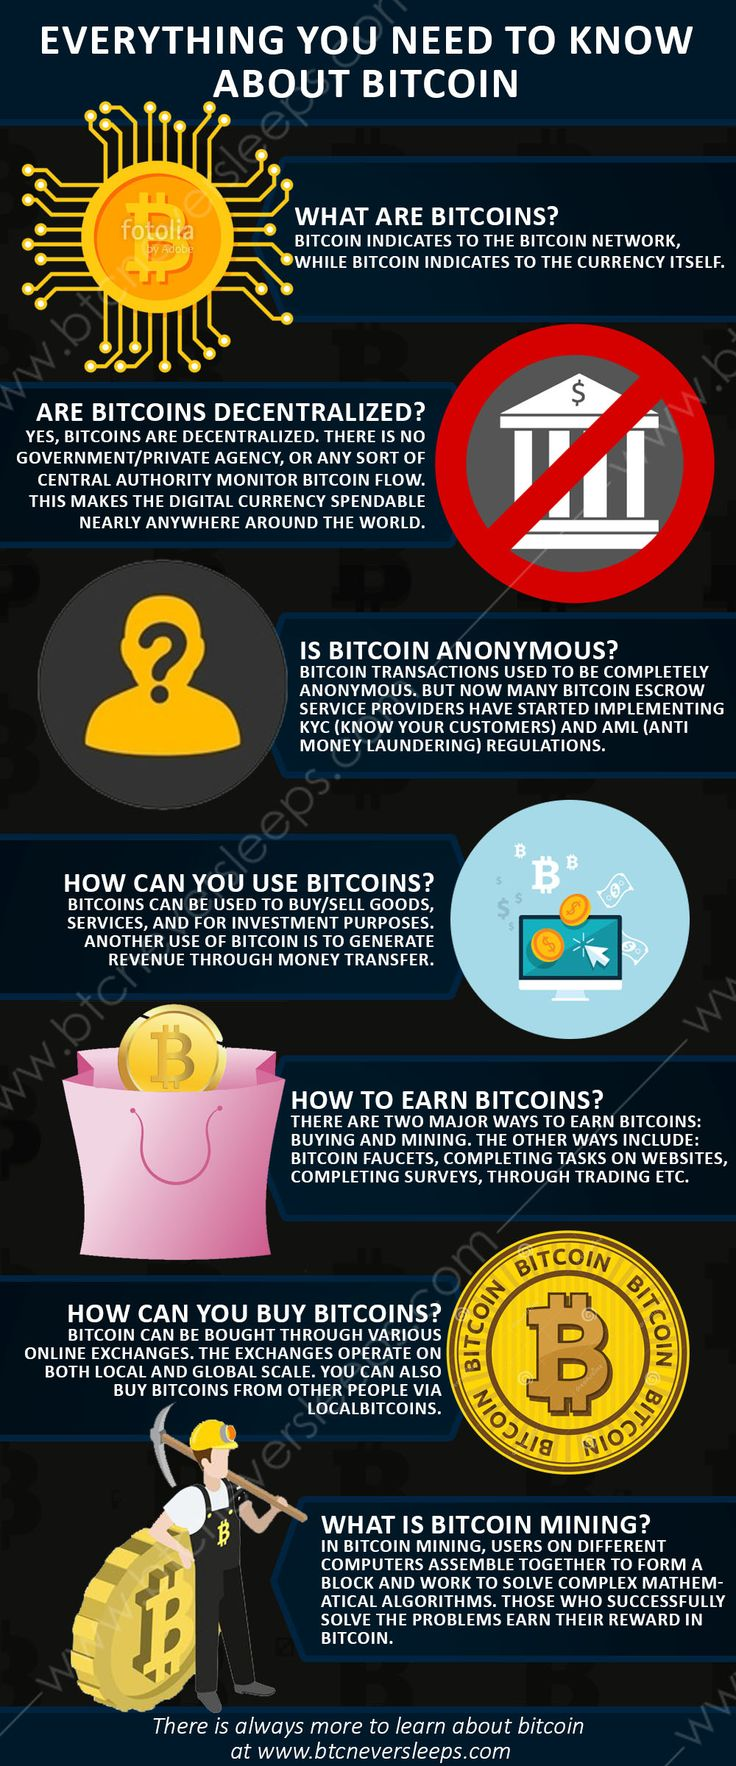 Everything You Need To Know About The Bitcoin #bitcoin #bitcoin Talk # Bitcoin Trading